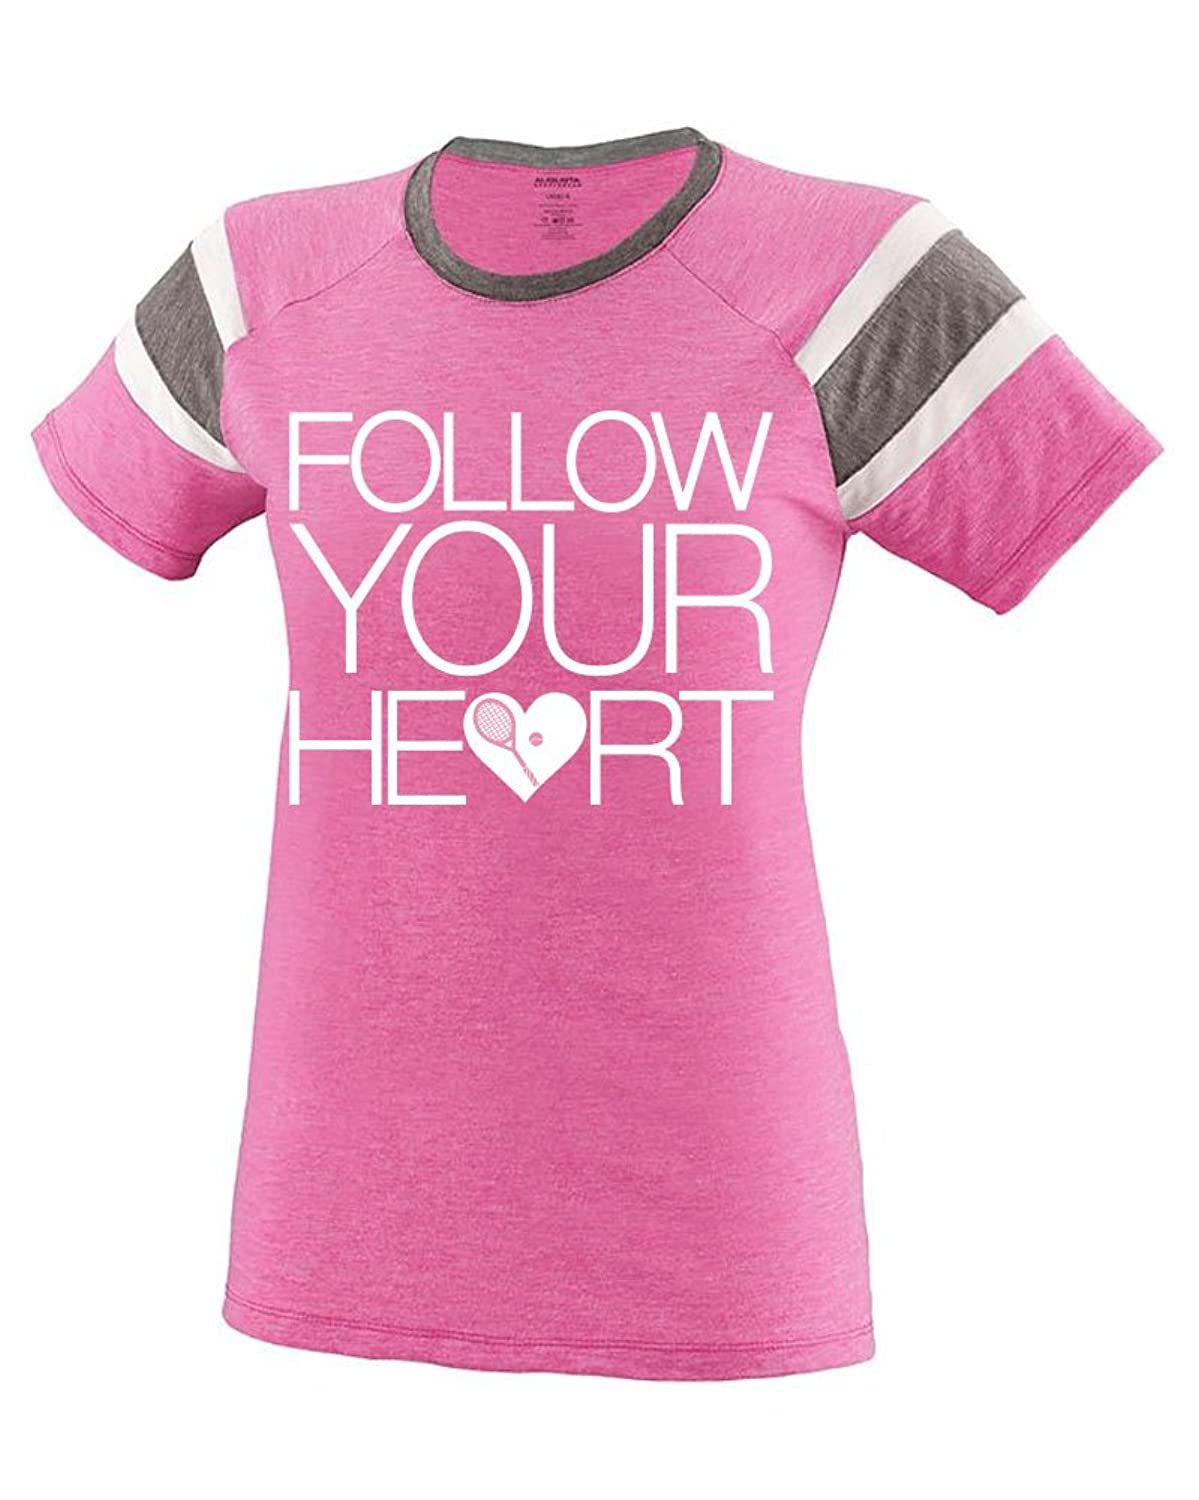 Sports Katz Womens 'Follow Your Heart' TENNIS Fanatic Tee